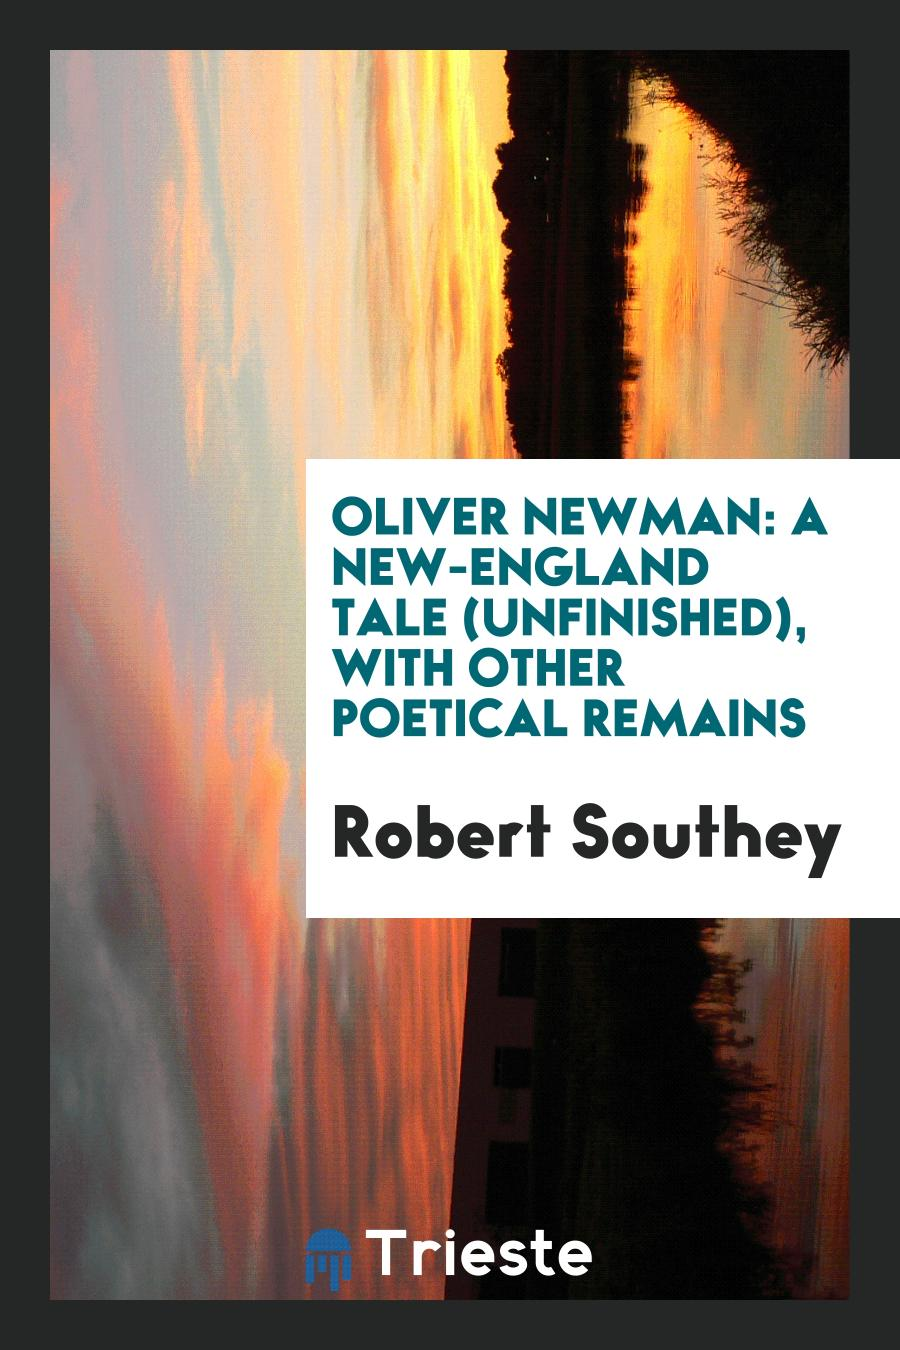 Oliver Newman: A New-England Tale (Unfinished), with Other Poetical Remains